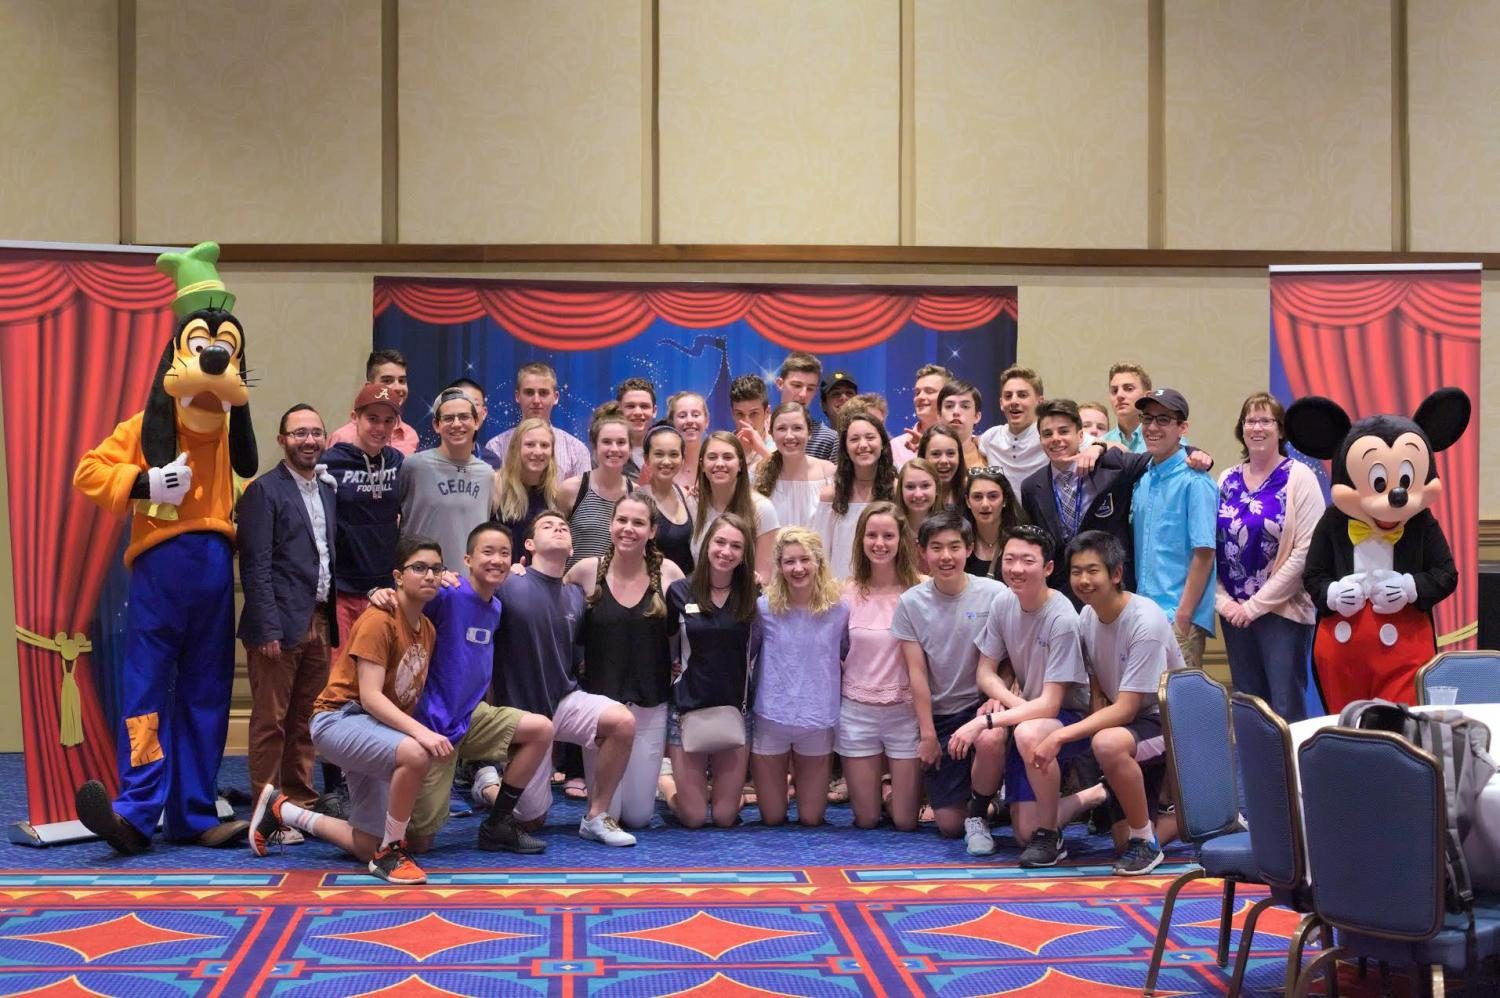 The+37+ICDC+qualifiers+take+a+trip+to+Anaheim%2C+California+to+compete%2C+and+also+got+to+stop+in+Disneyland.